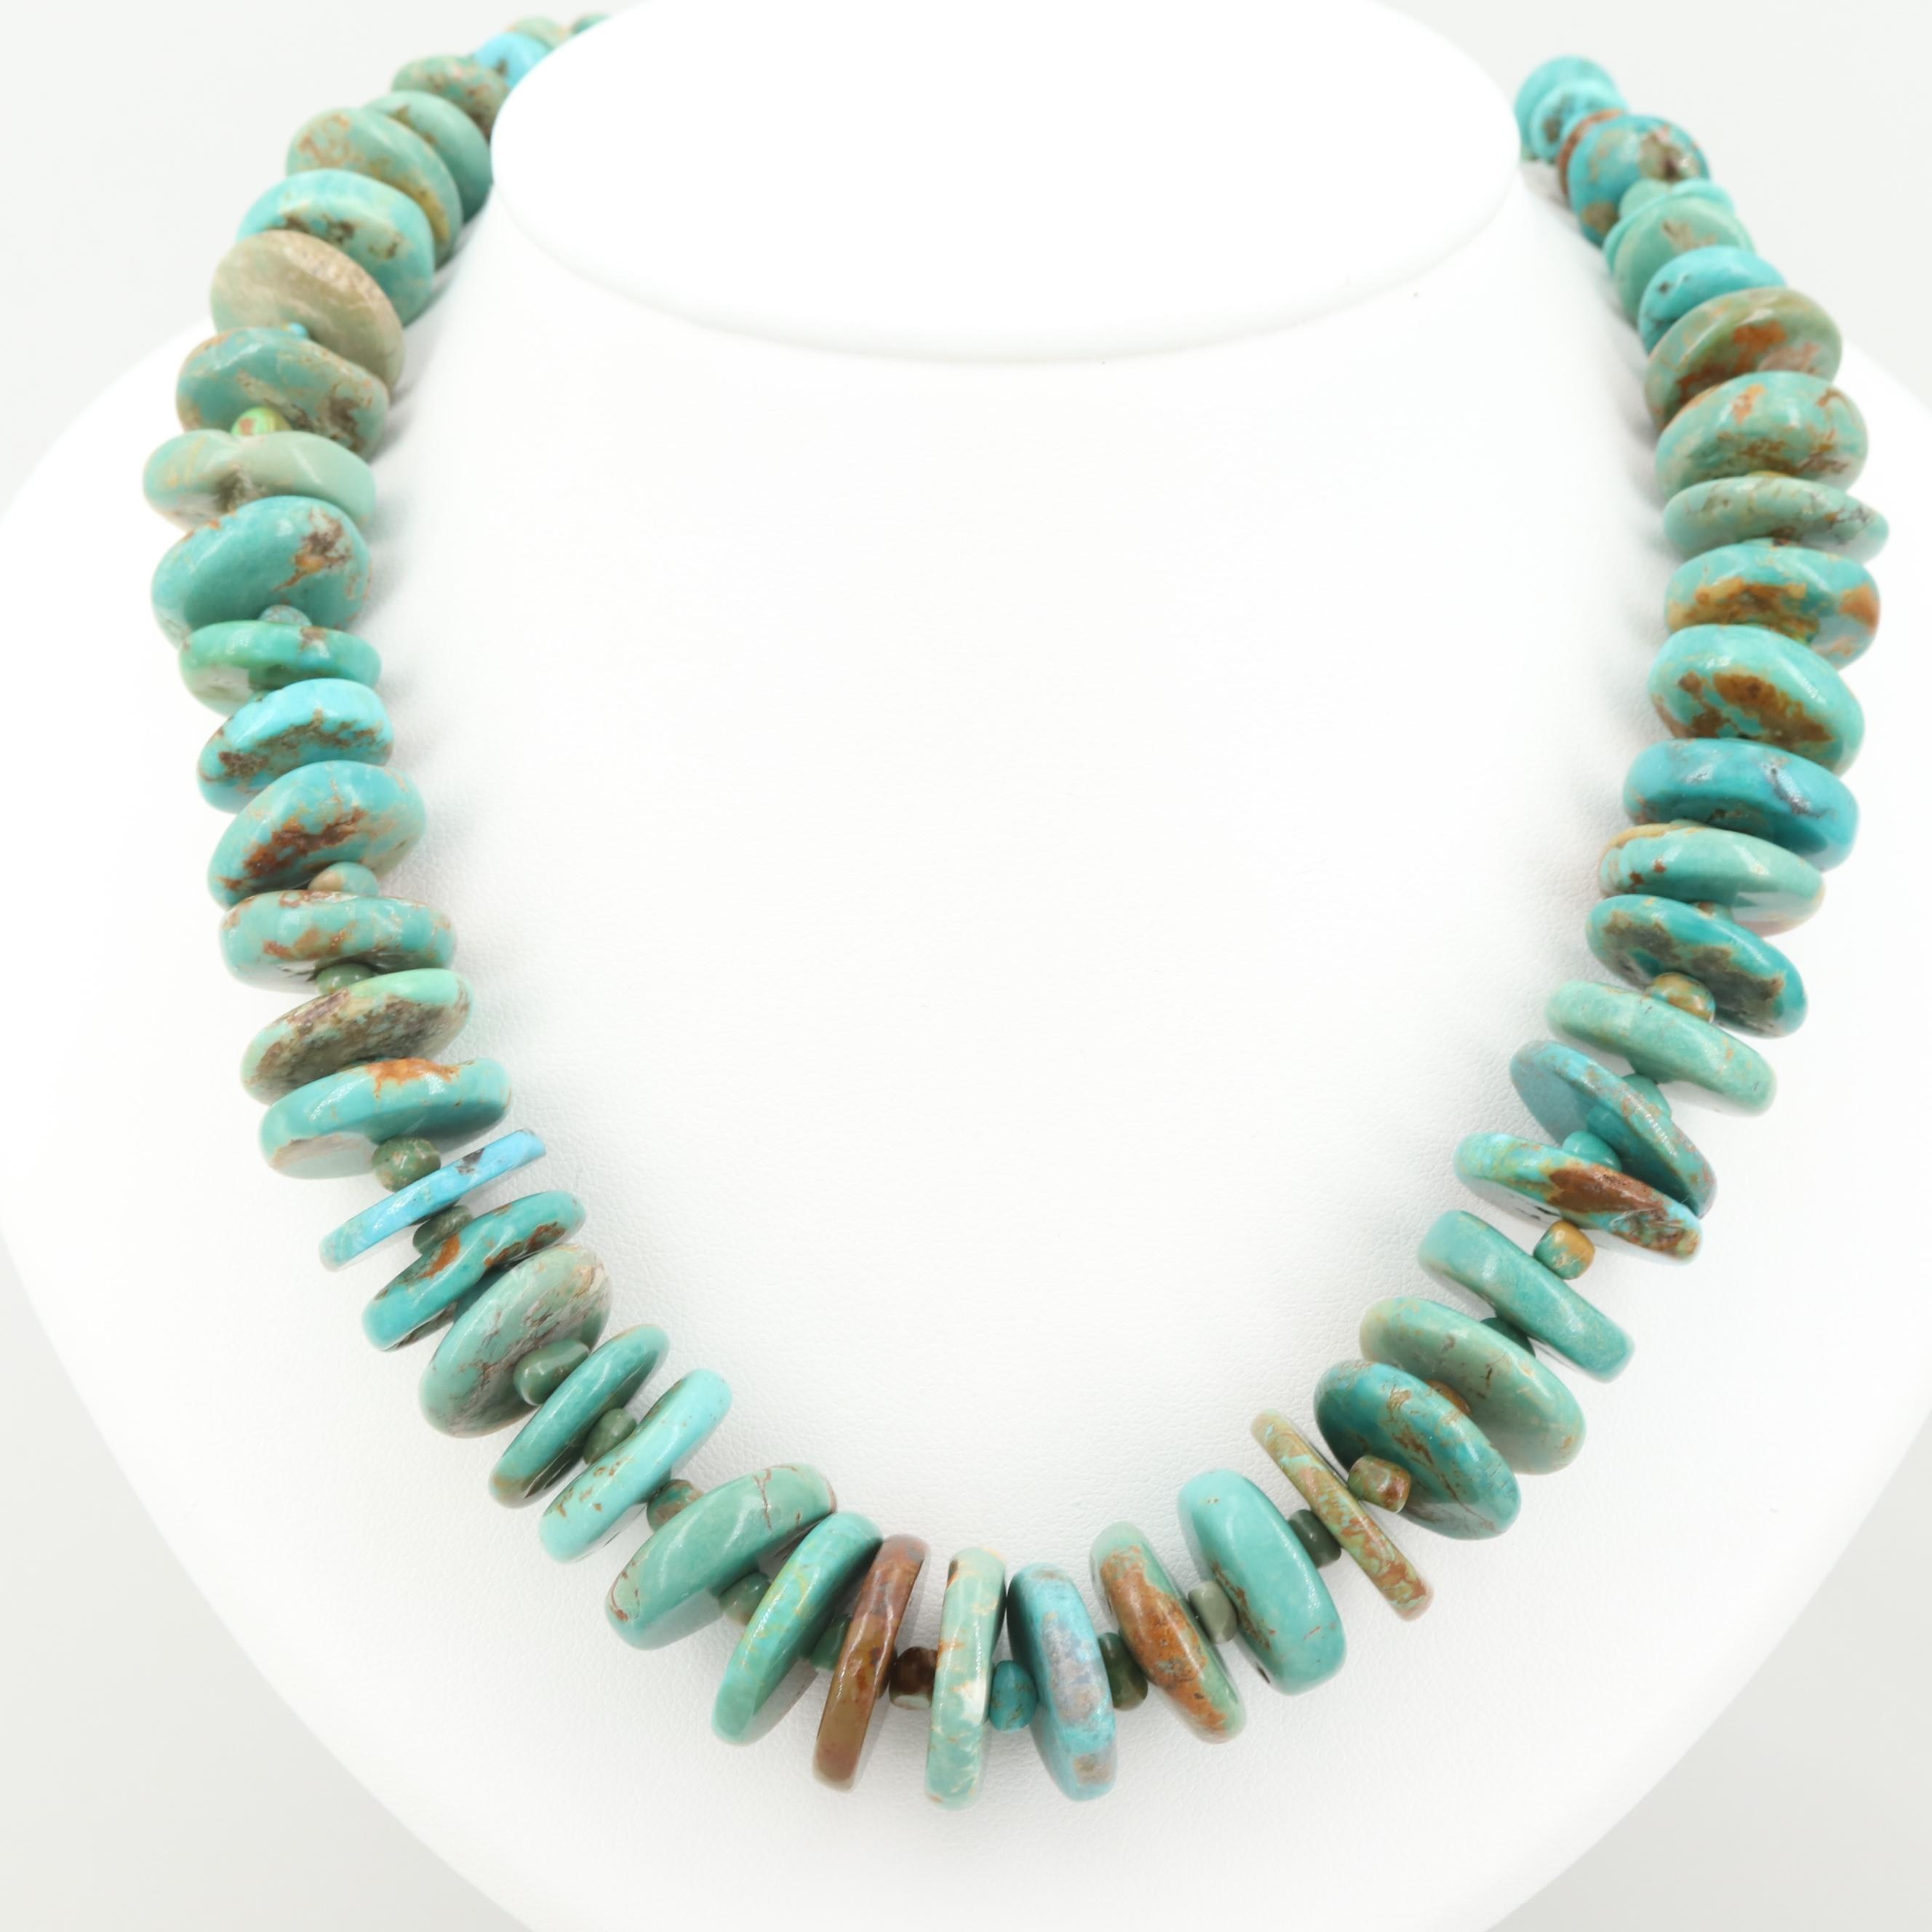 Turquoise Bead Graduating Necklace with Sterling Silver